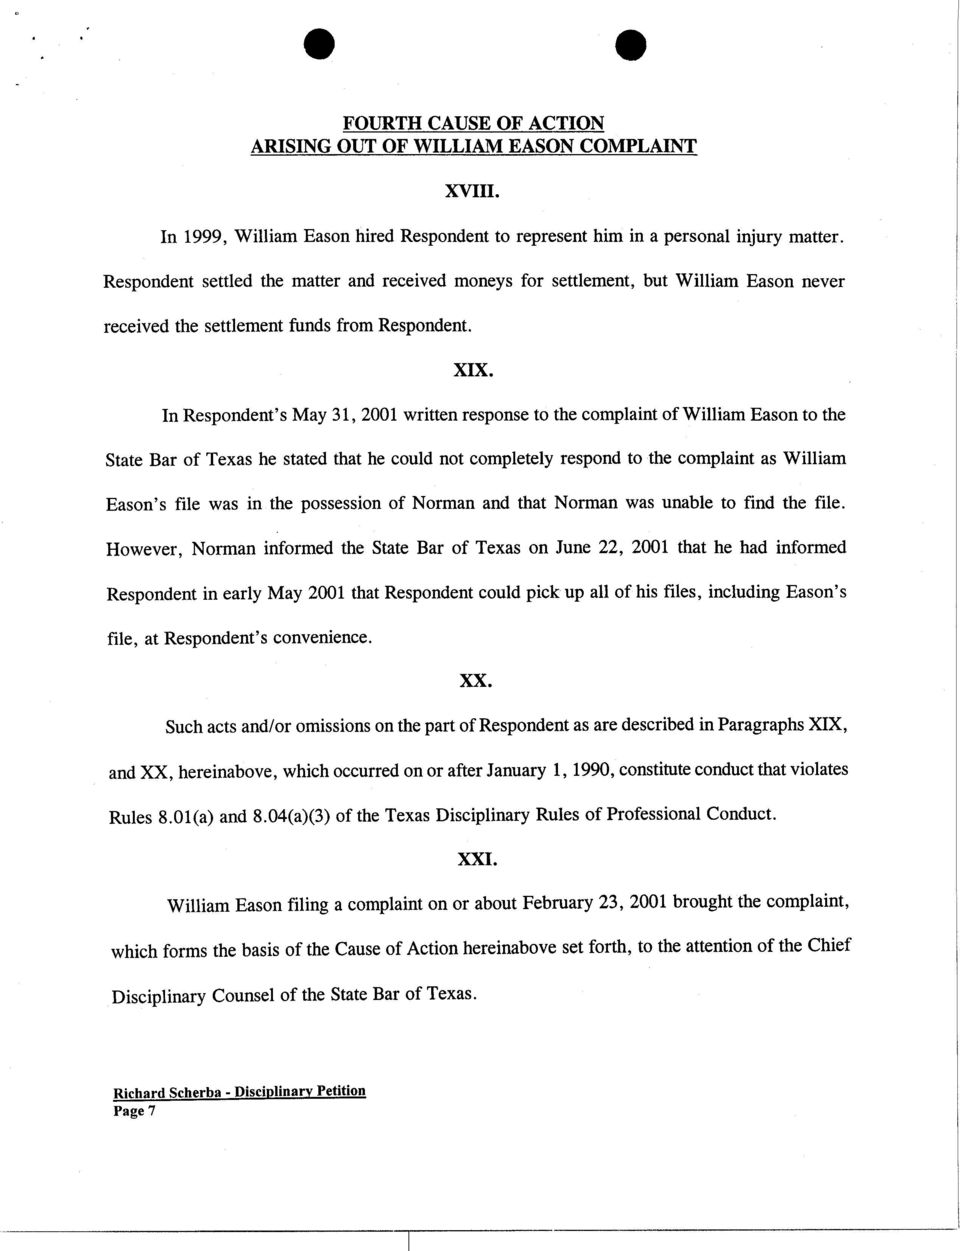 In Respondent's May 31,2001 written response to the complaint of William Eason to the State Bar of Texas he stated that he could not completely respond to the complaint as William Eason's file was in